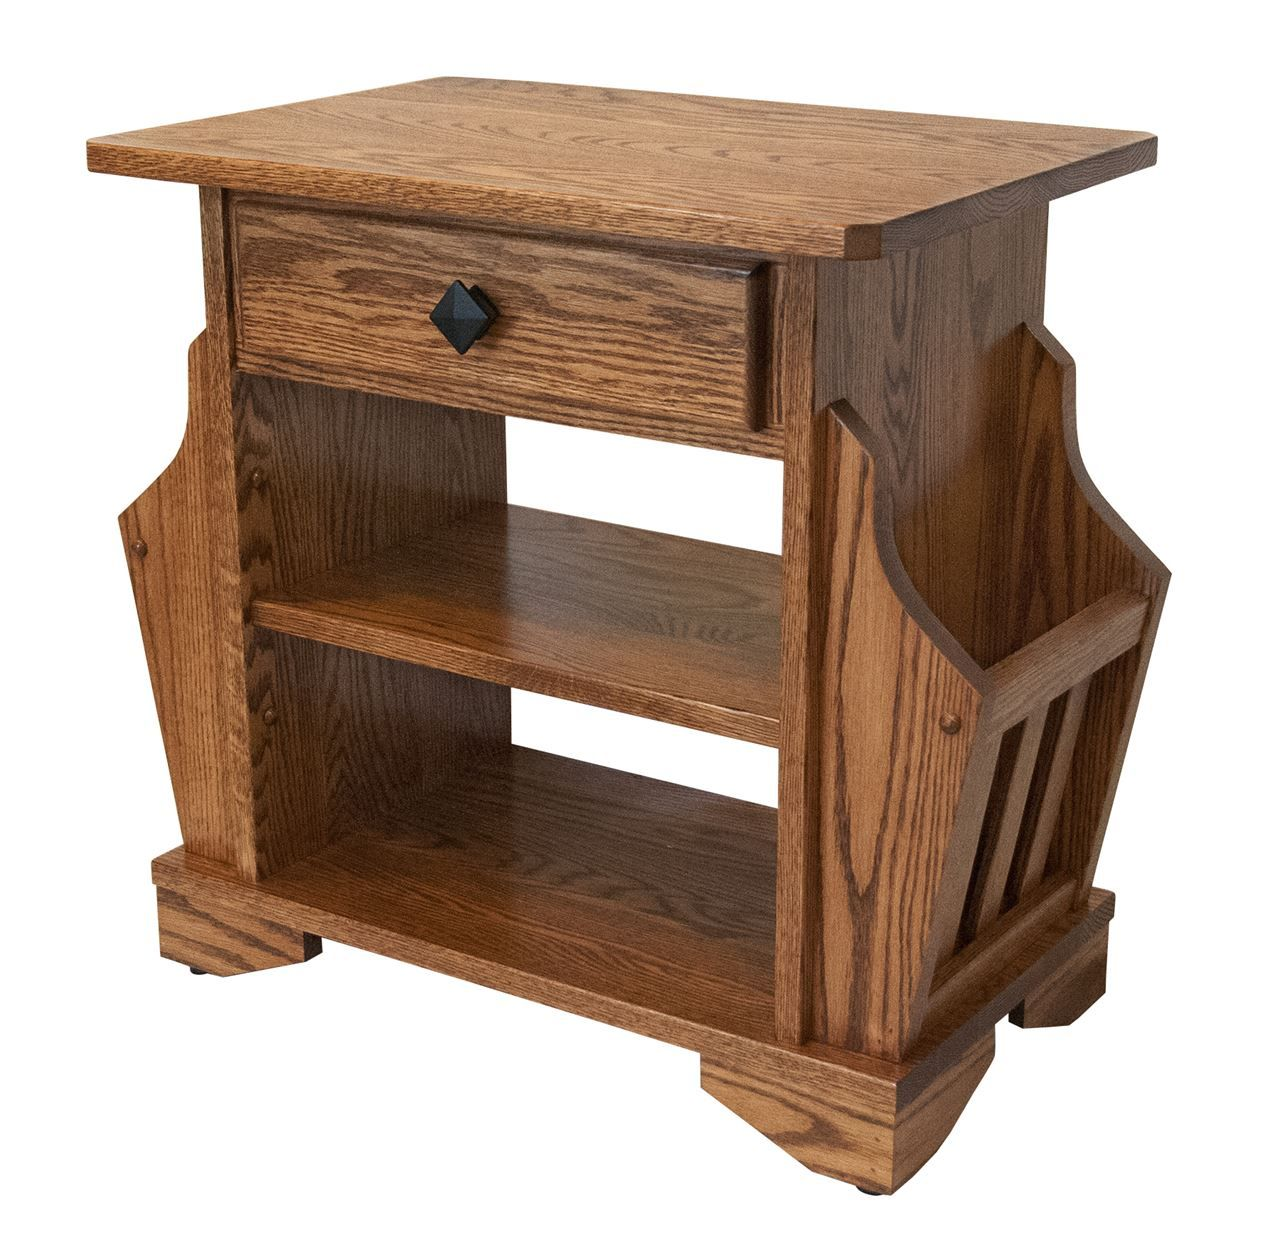 Picture Of Solid Oak Amish Built Magazine Rack End Table Mission Style W Drawer